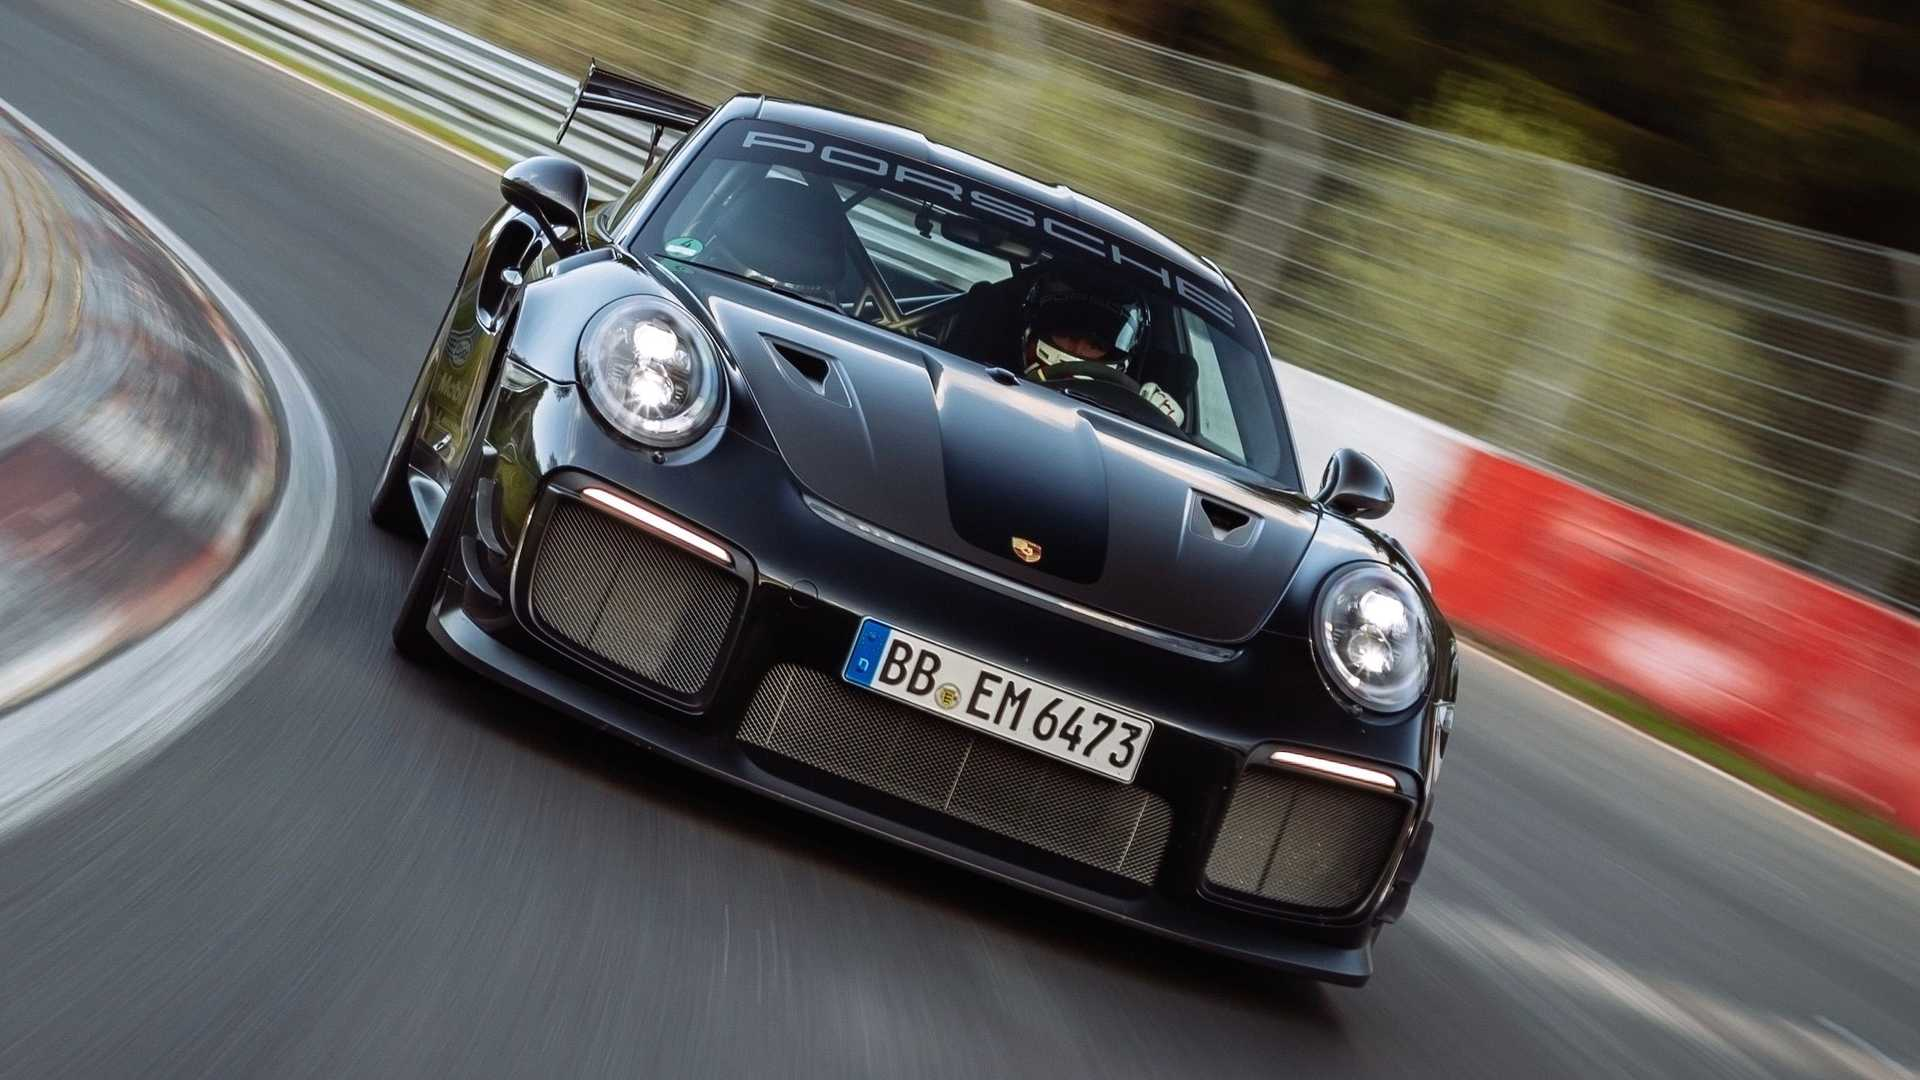 Porsche-911-GT2-RS-Manthey-Performance-Kit-Nurburgring-Record-22